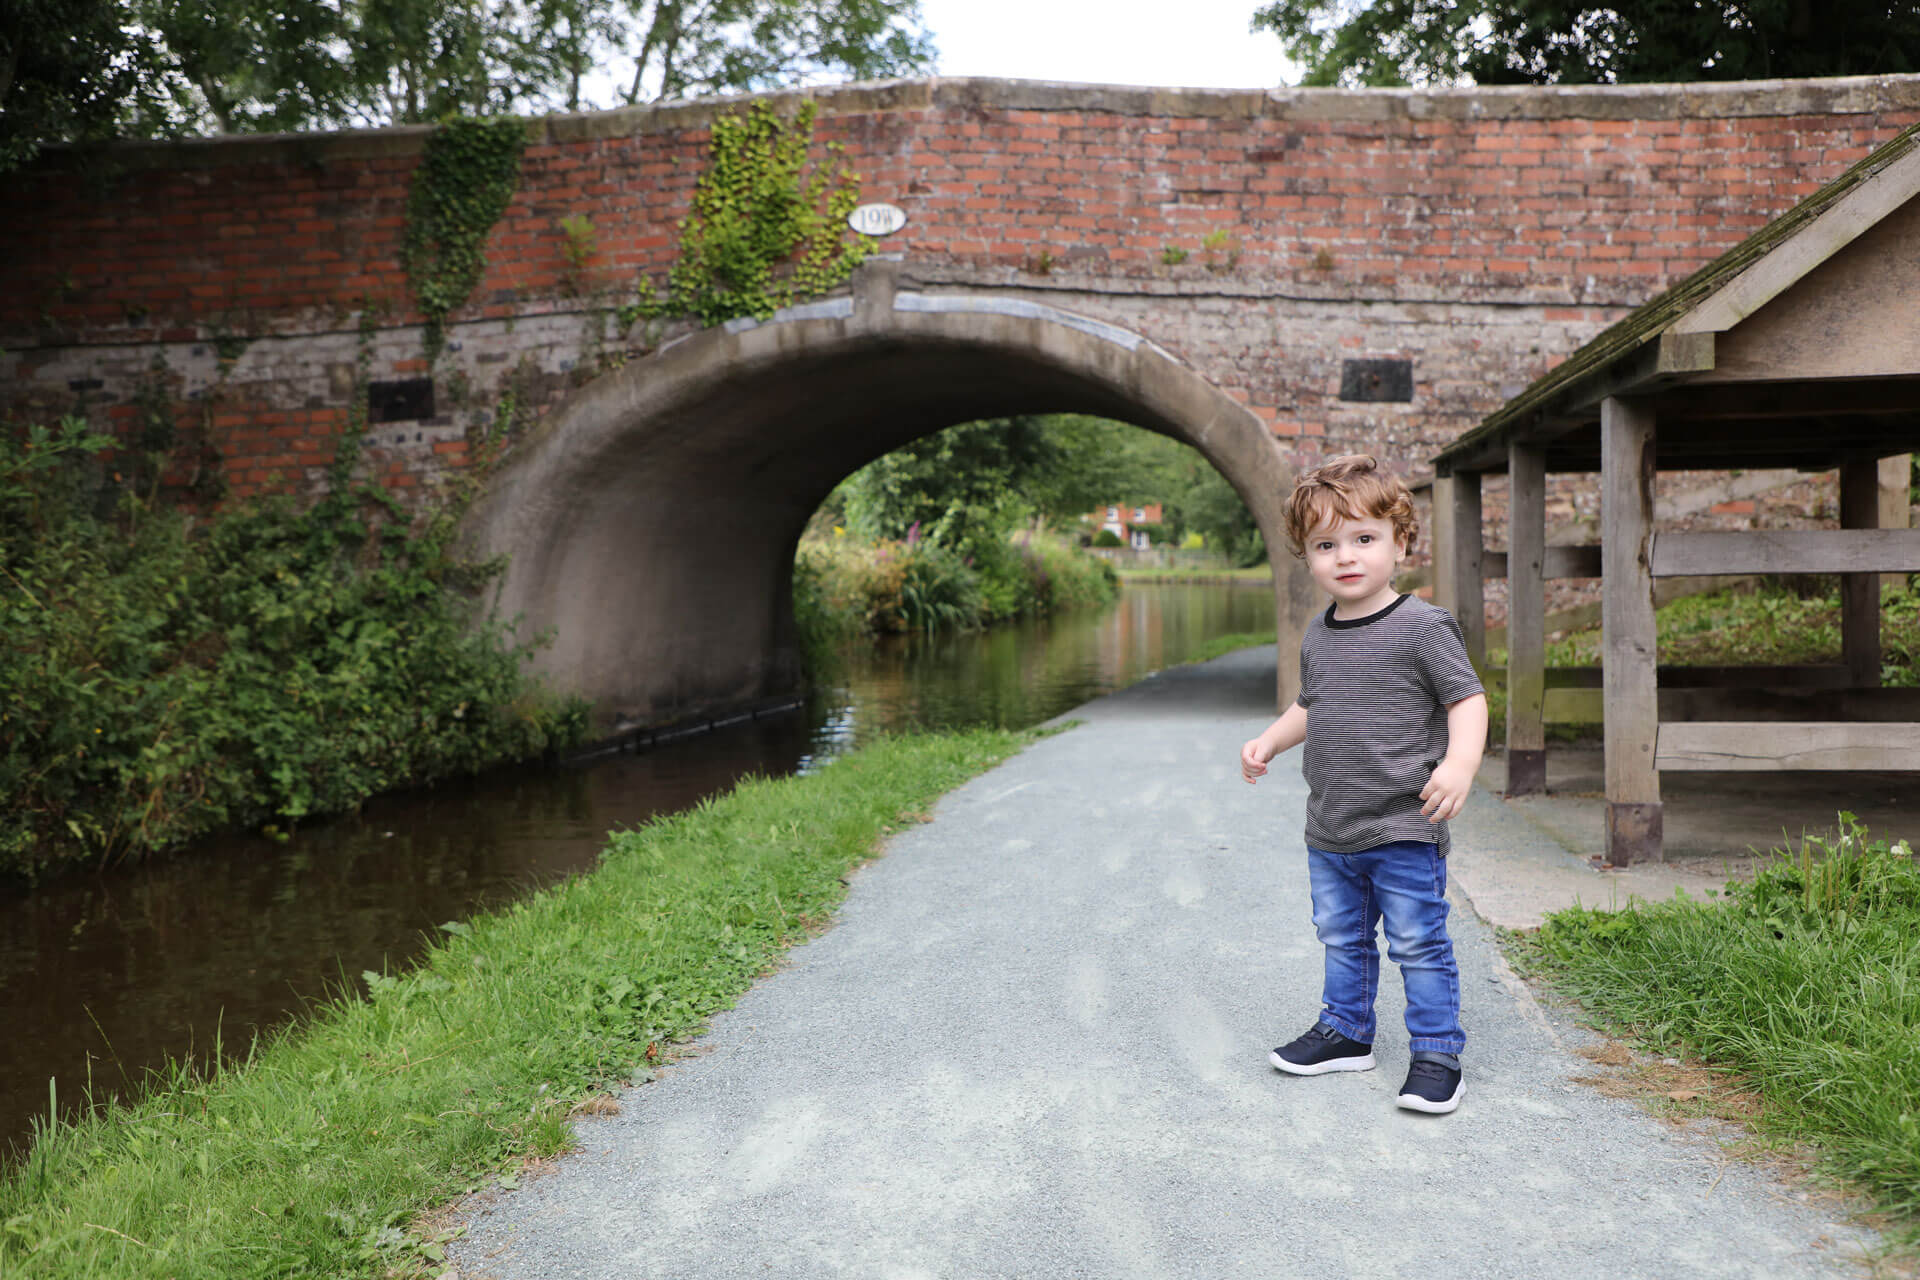 Location photo of a toddler by canal bridge North Wales